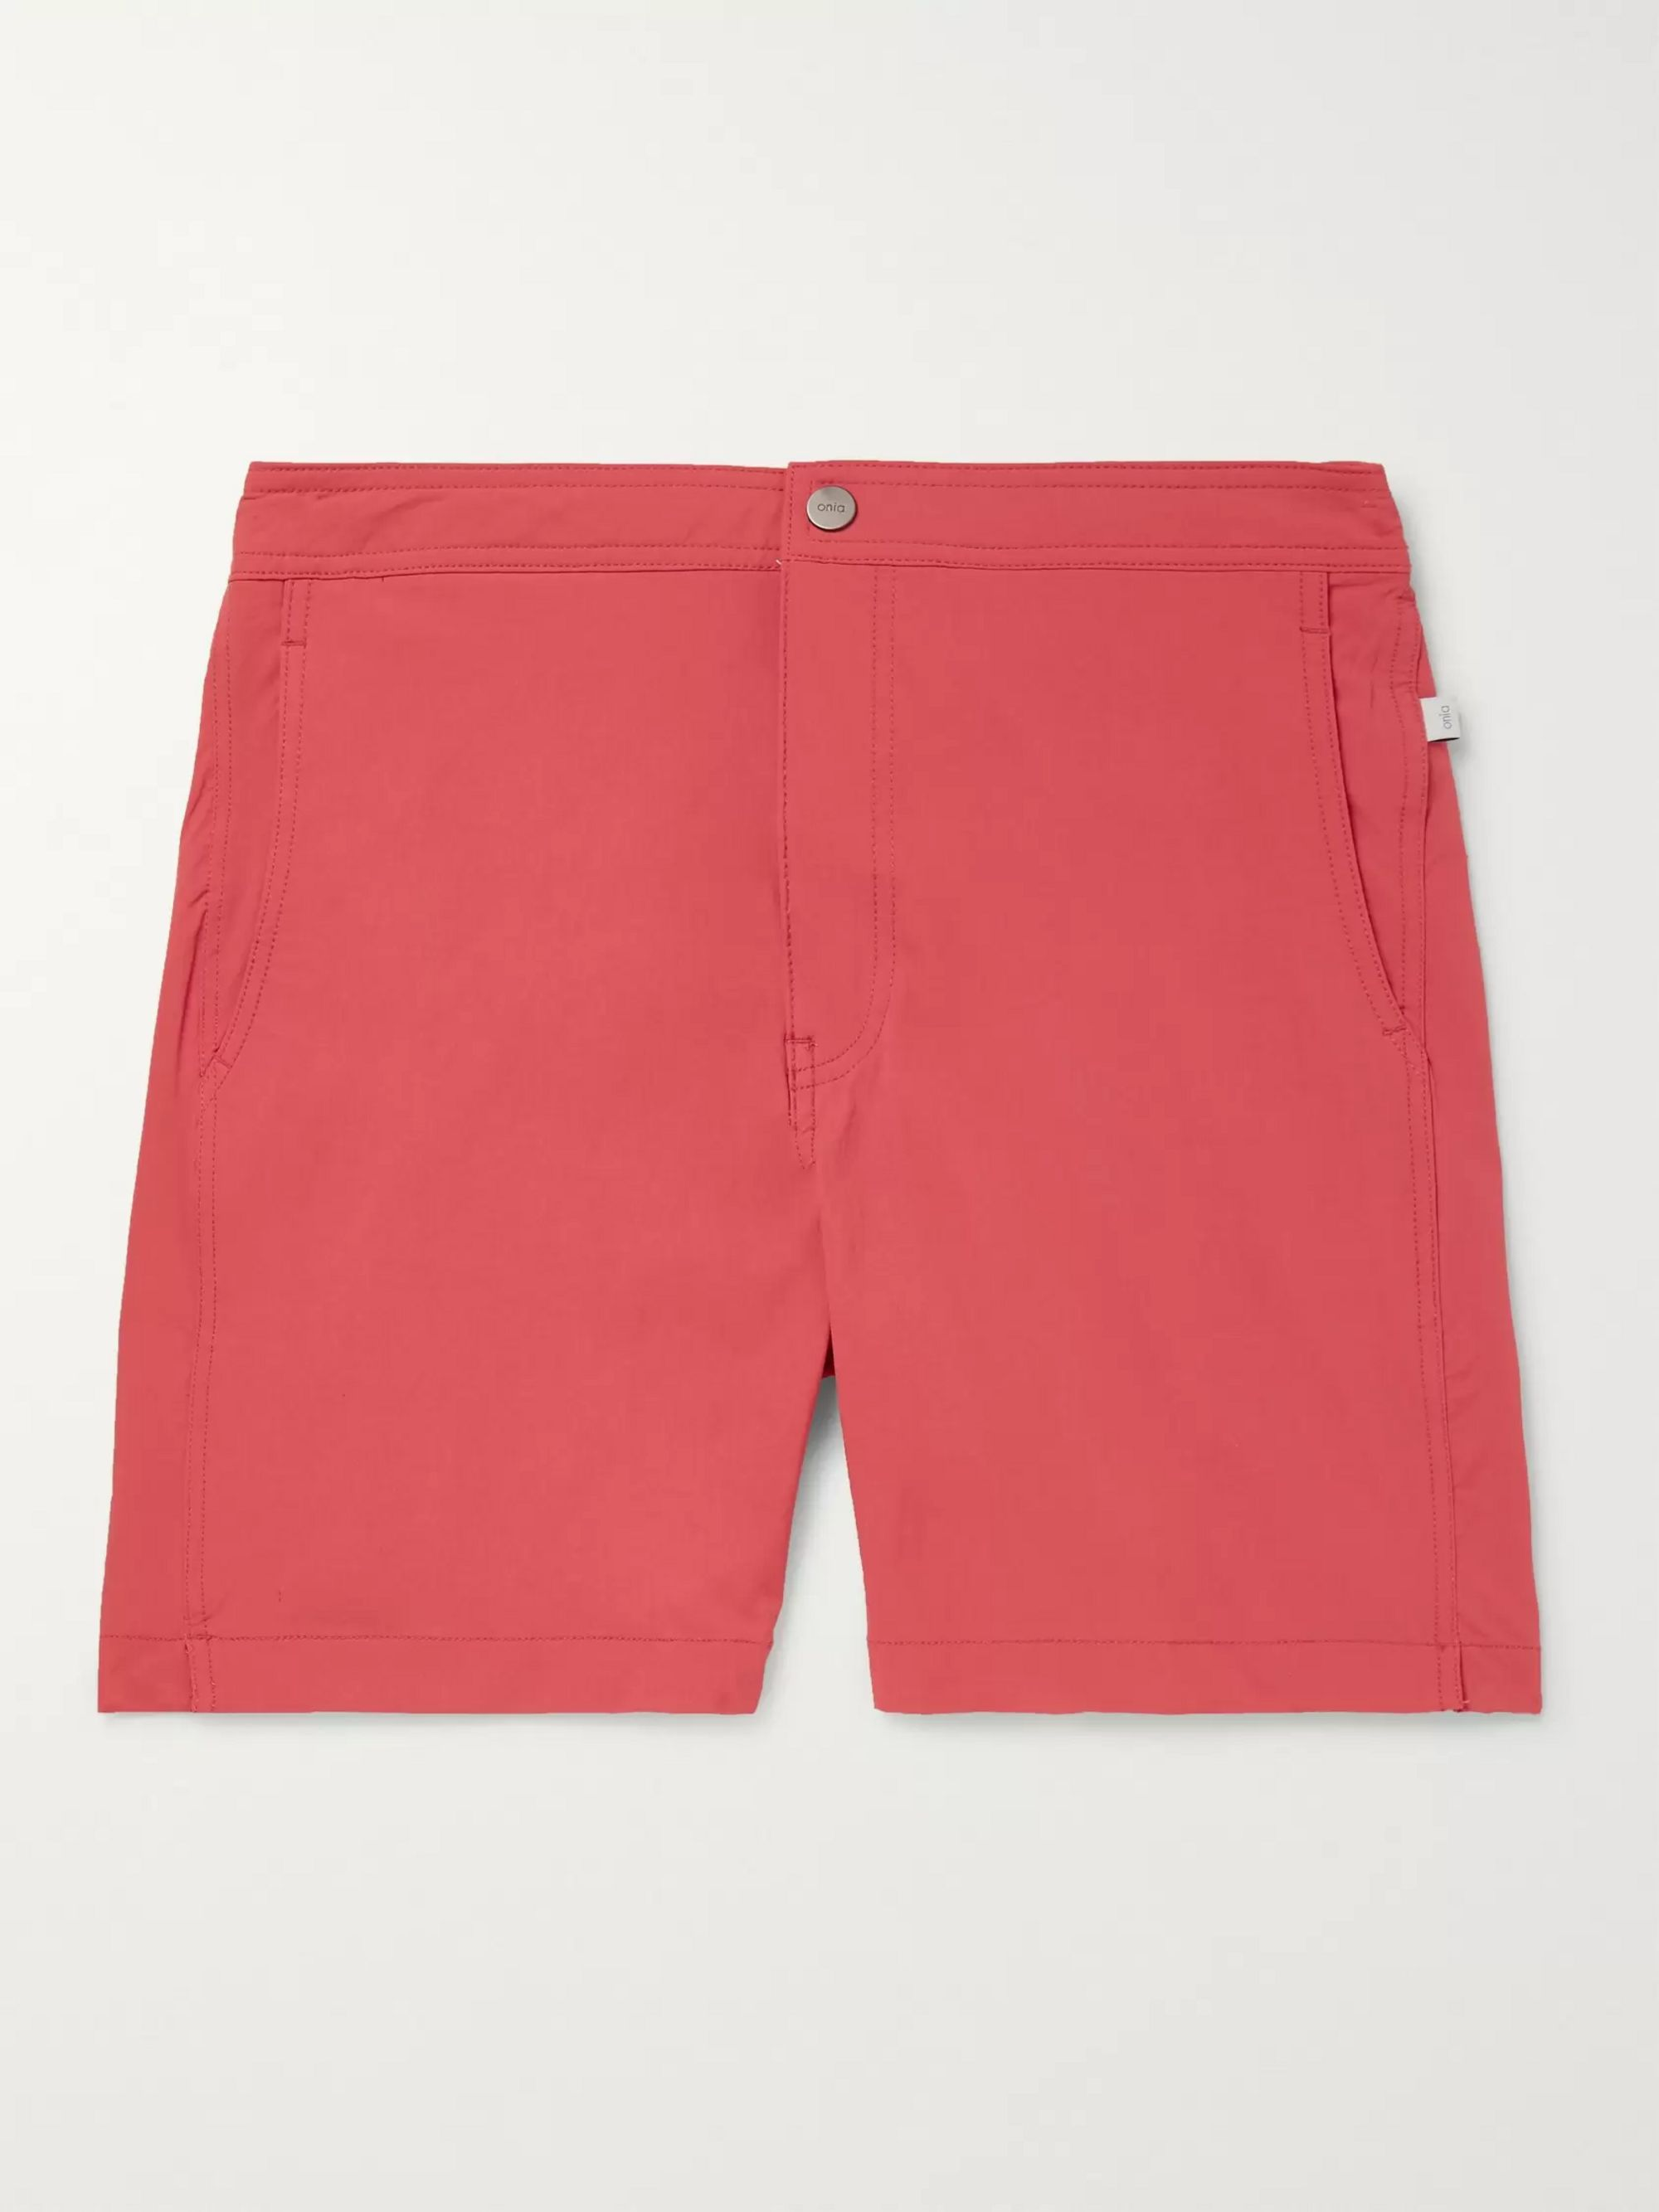 Calder Mid Length Swim Shorts by Onia